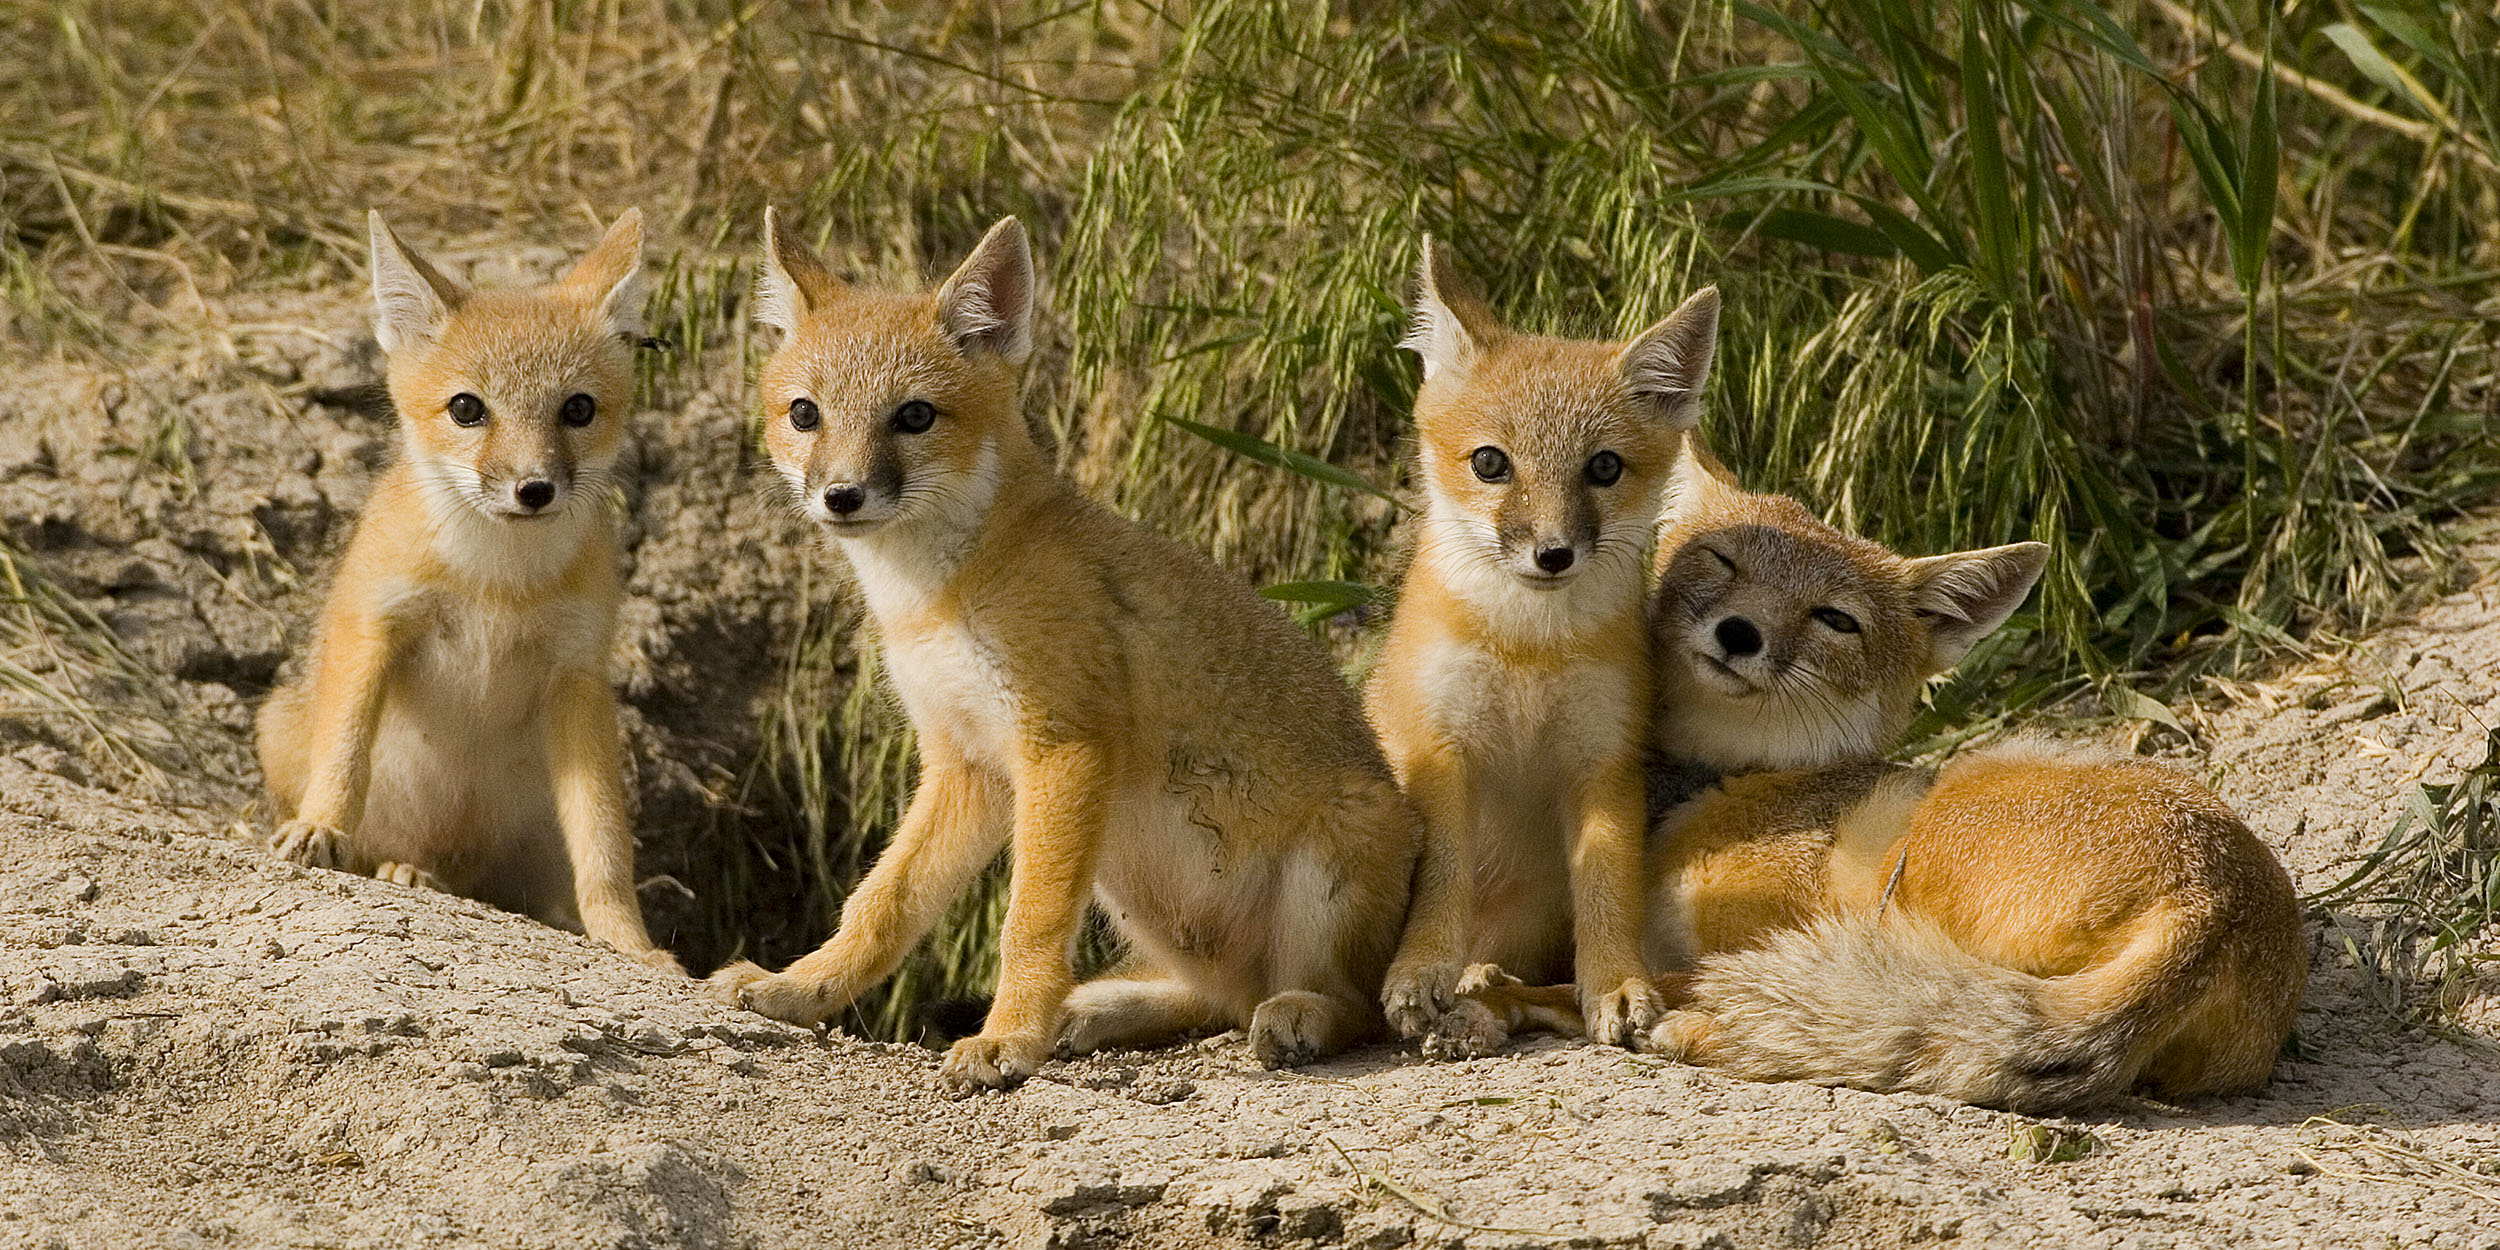 Swift fox photo by Diane Hargreaves